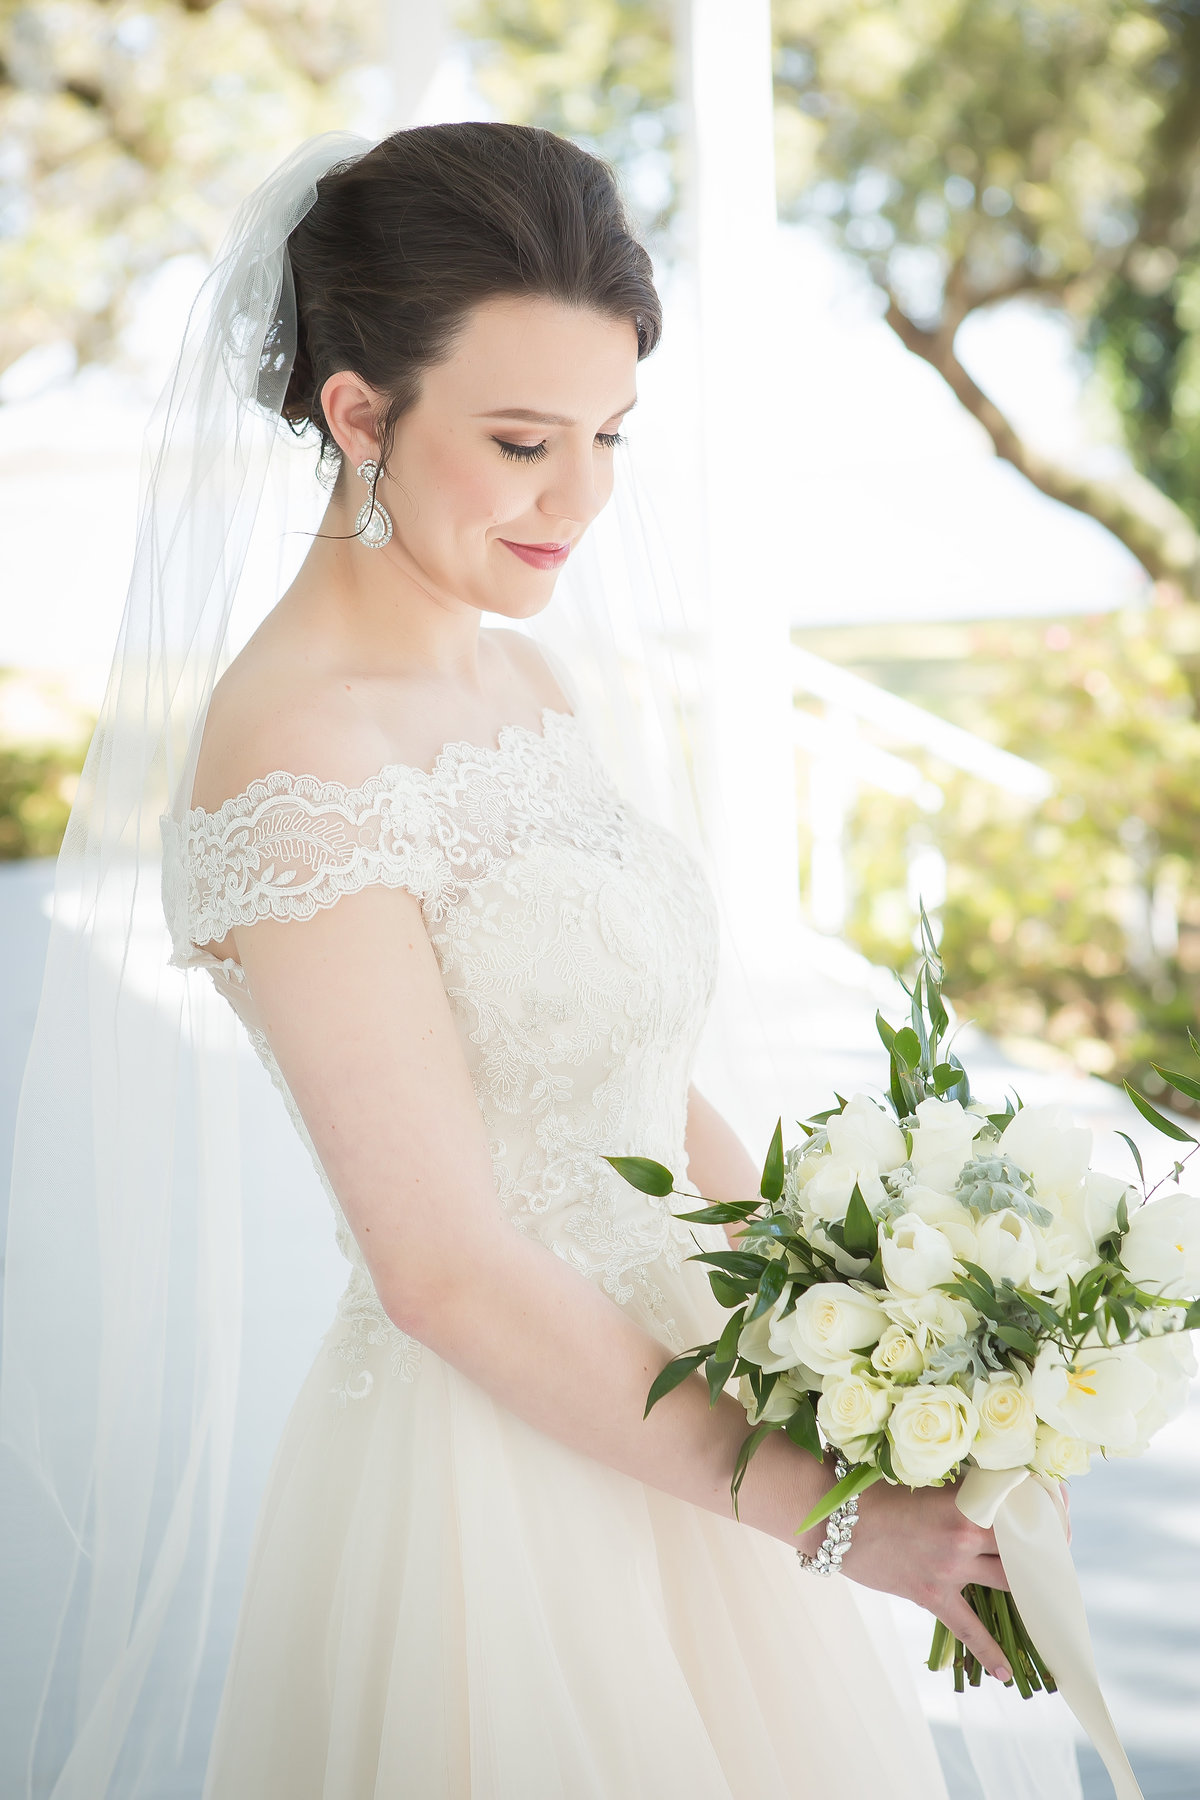 Wedding-Bridal-Photographers-Biloxi-Gulfport-Mississippi-636